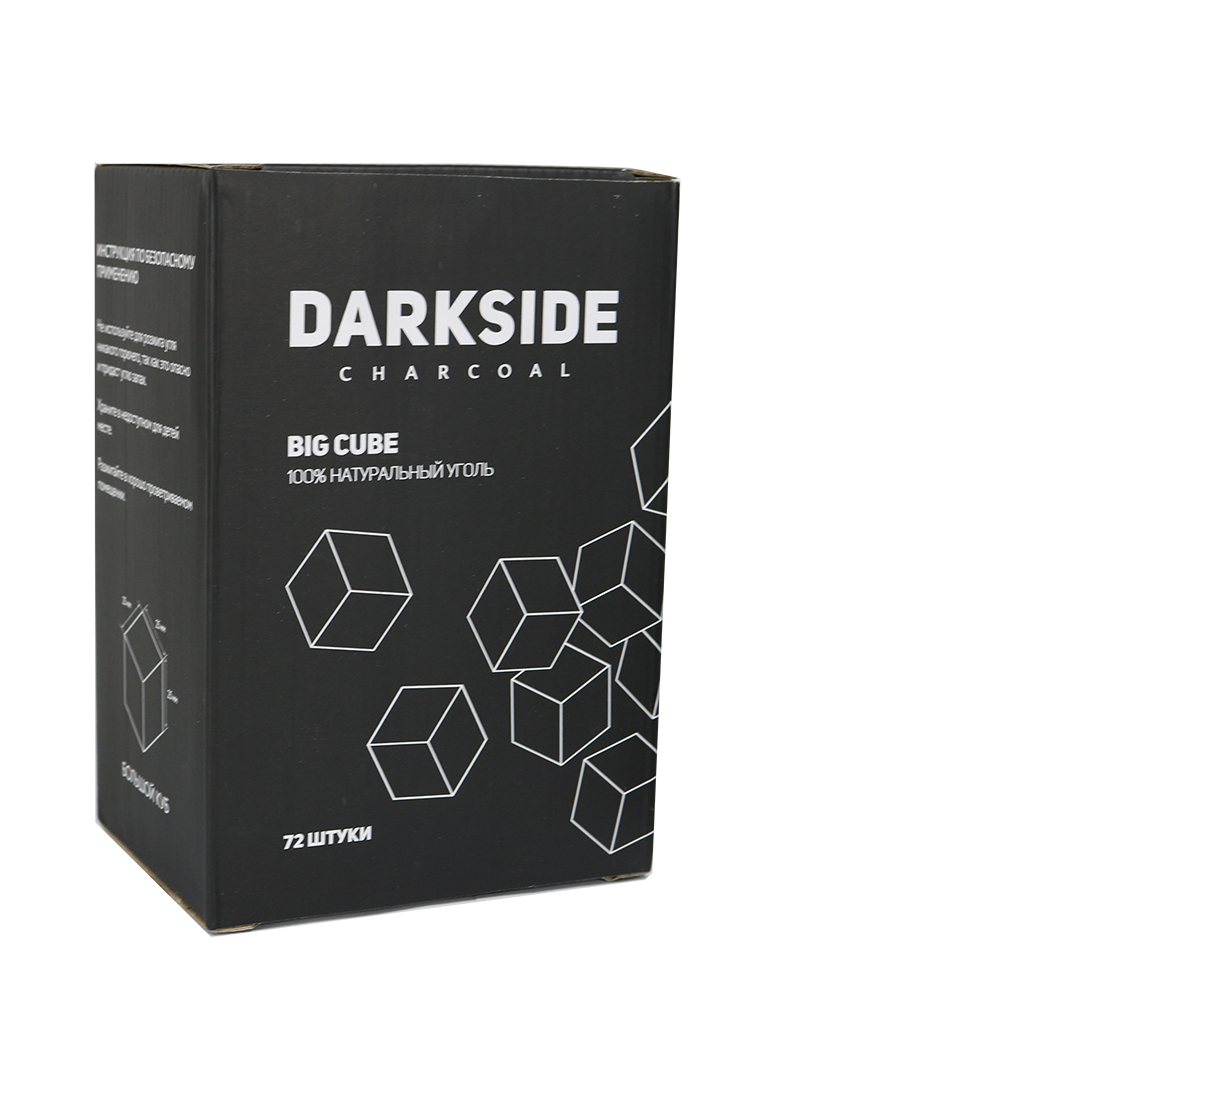 DarkSide Big Cube